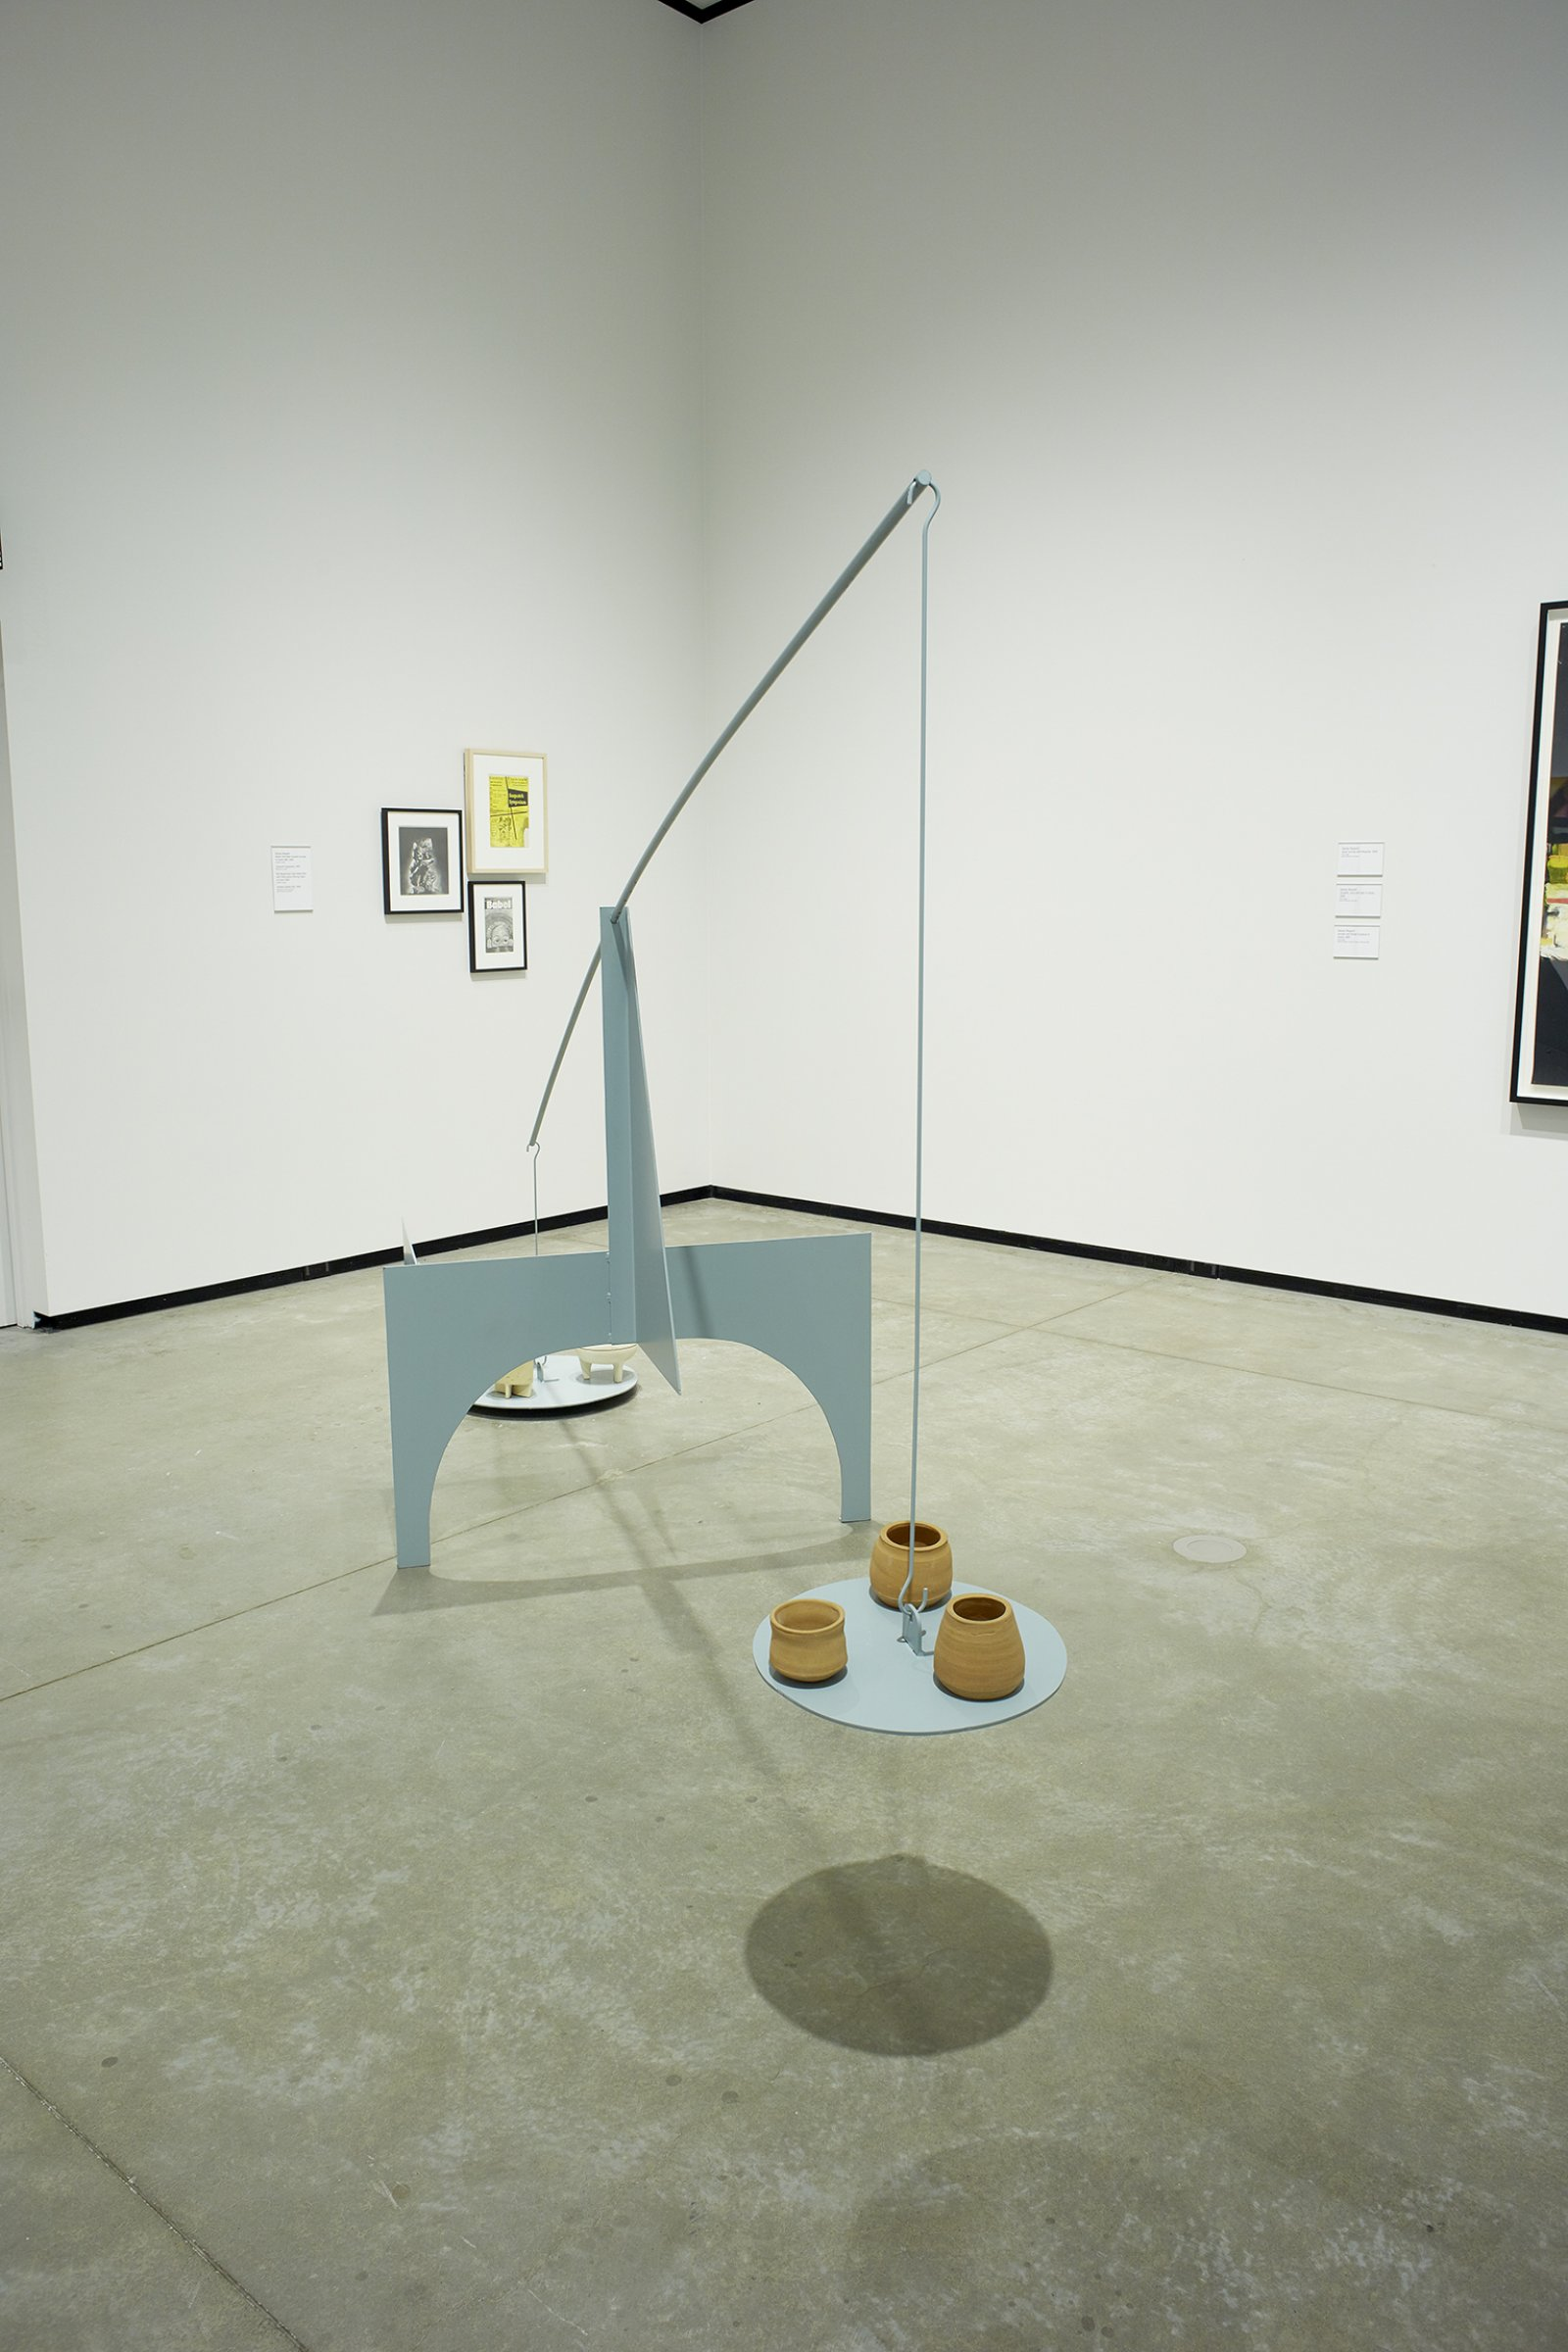 Damian Moppett, Untitled (Stabile C#1), 2005, steel, paint, wire, stoneware, 53 x 40 x 96 in. (135 x 102 x 244 cm). Installation view, Every Story Has Two Sides, Art Gallery of Alberta, Edmonton, 2016 by Damian Moppett